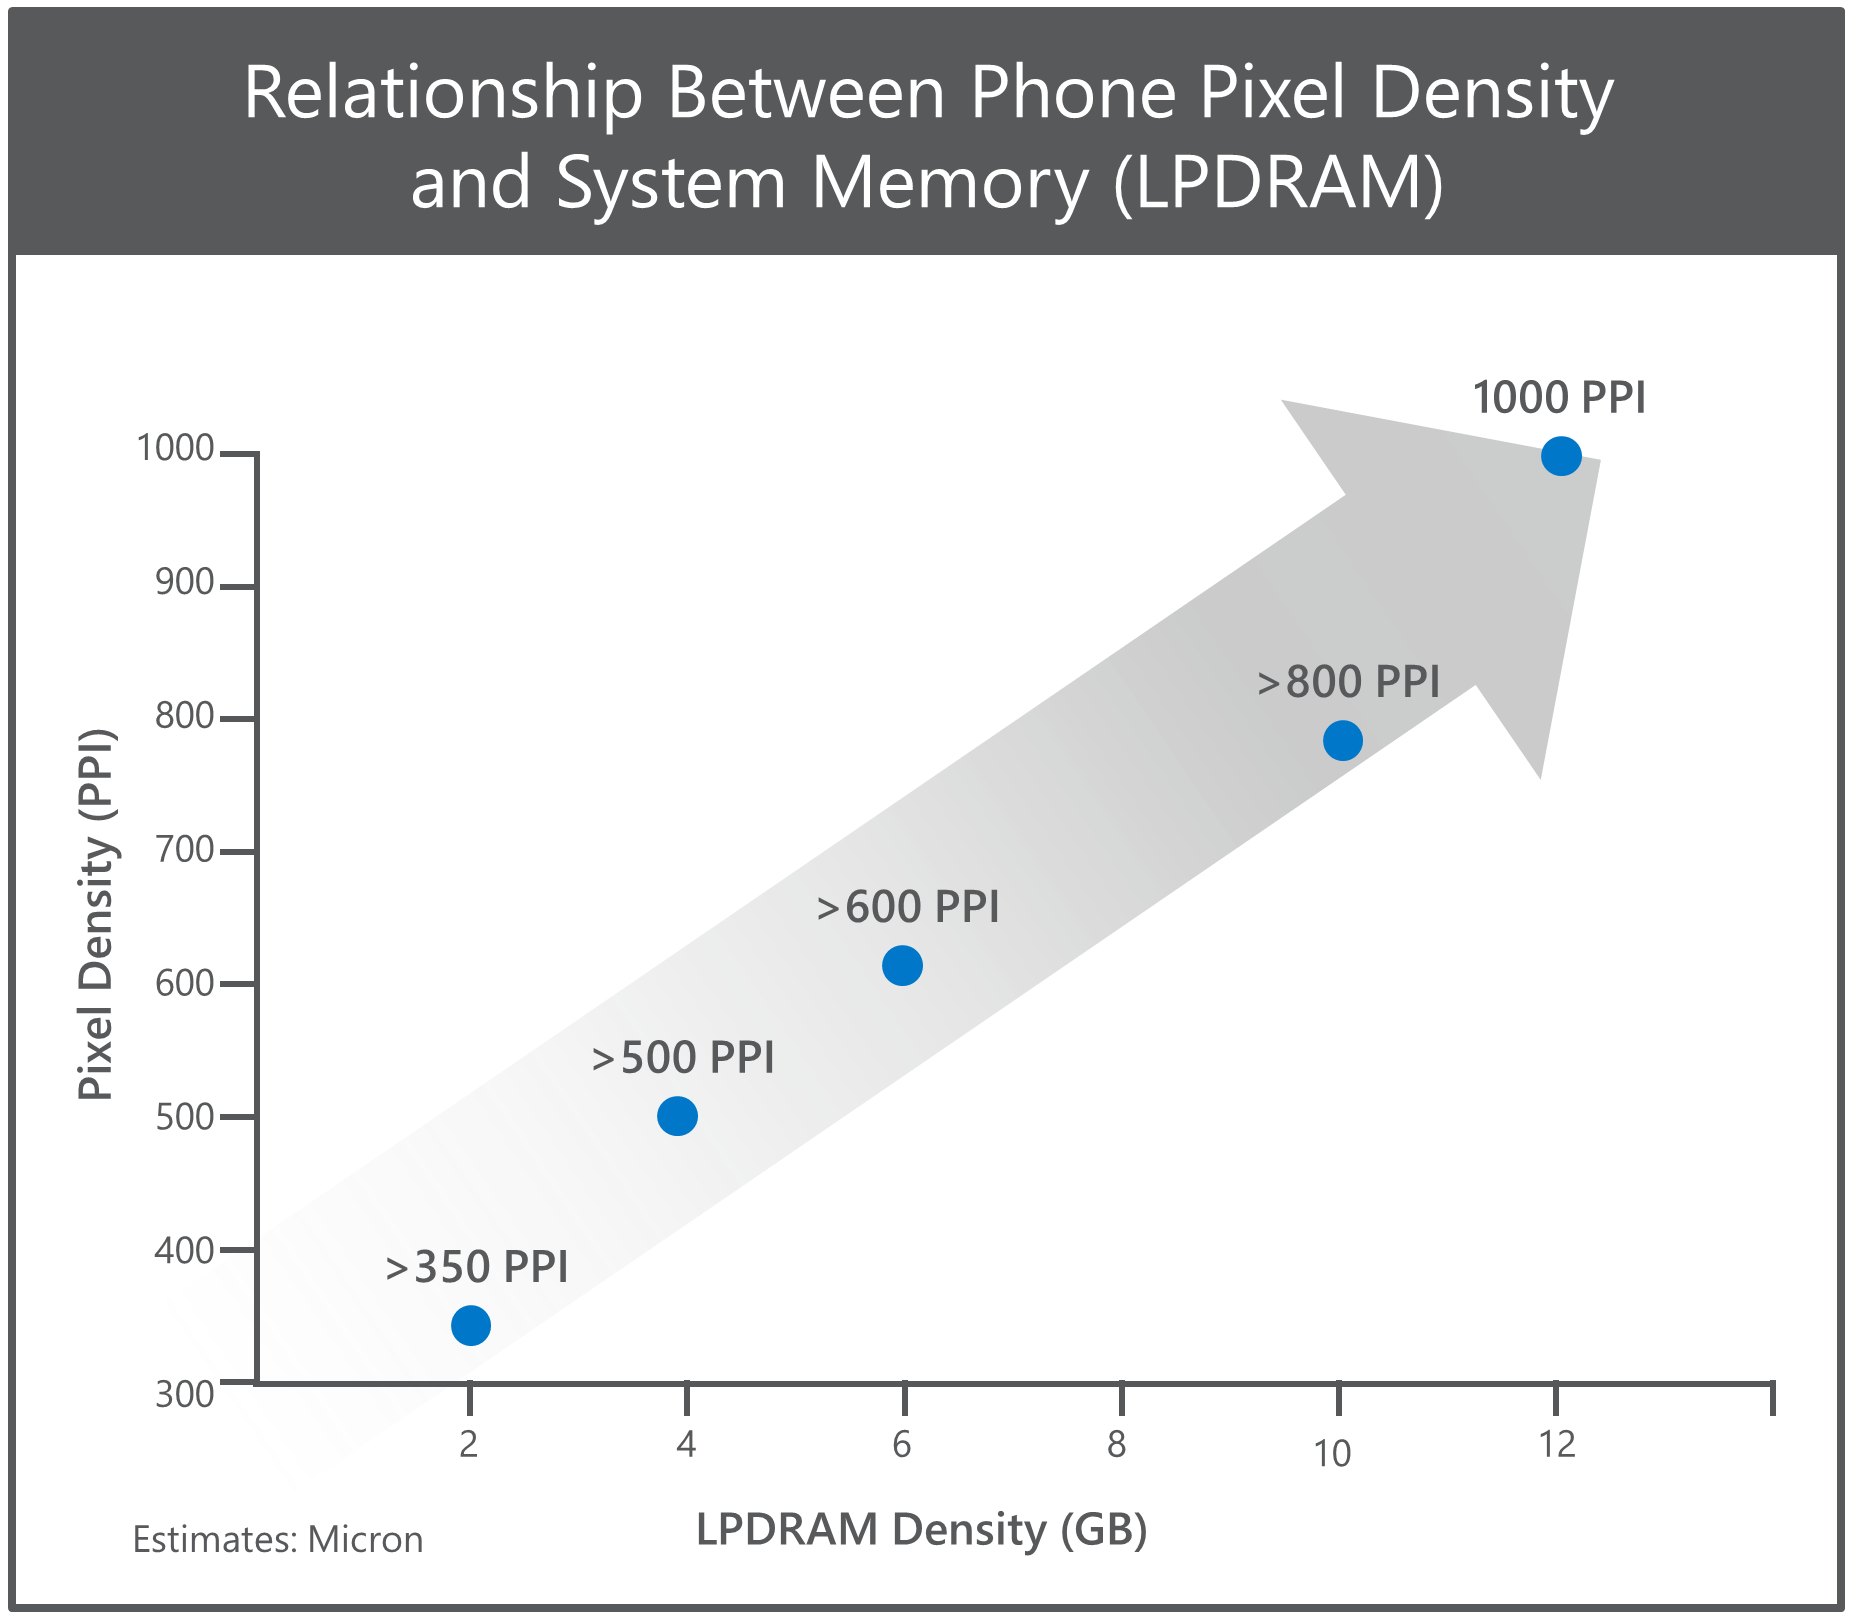 Relationship Between Phone Pixel Density and System Memory (LPDRAM)